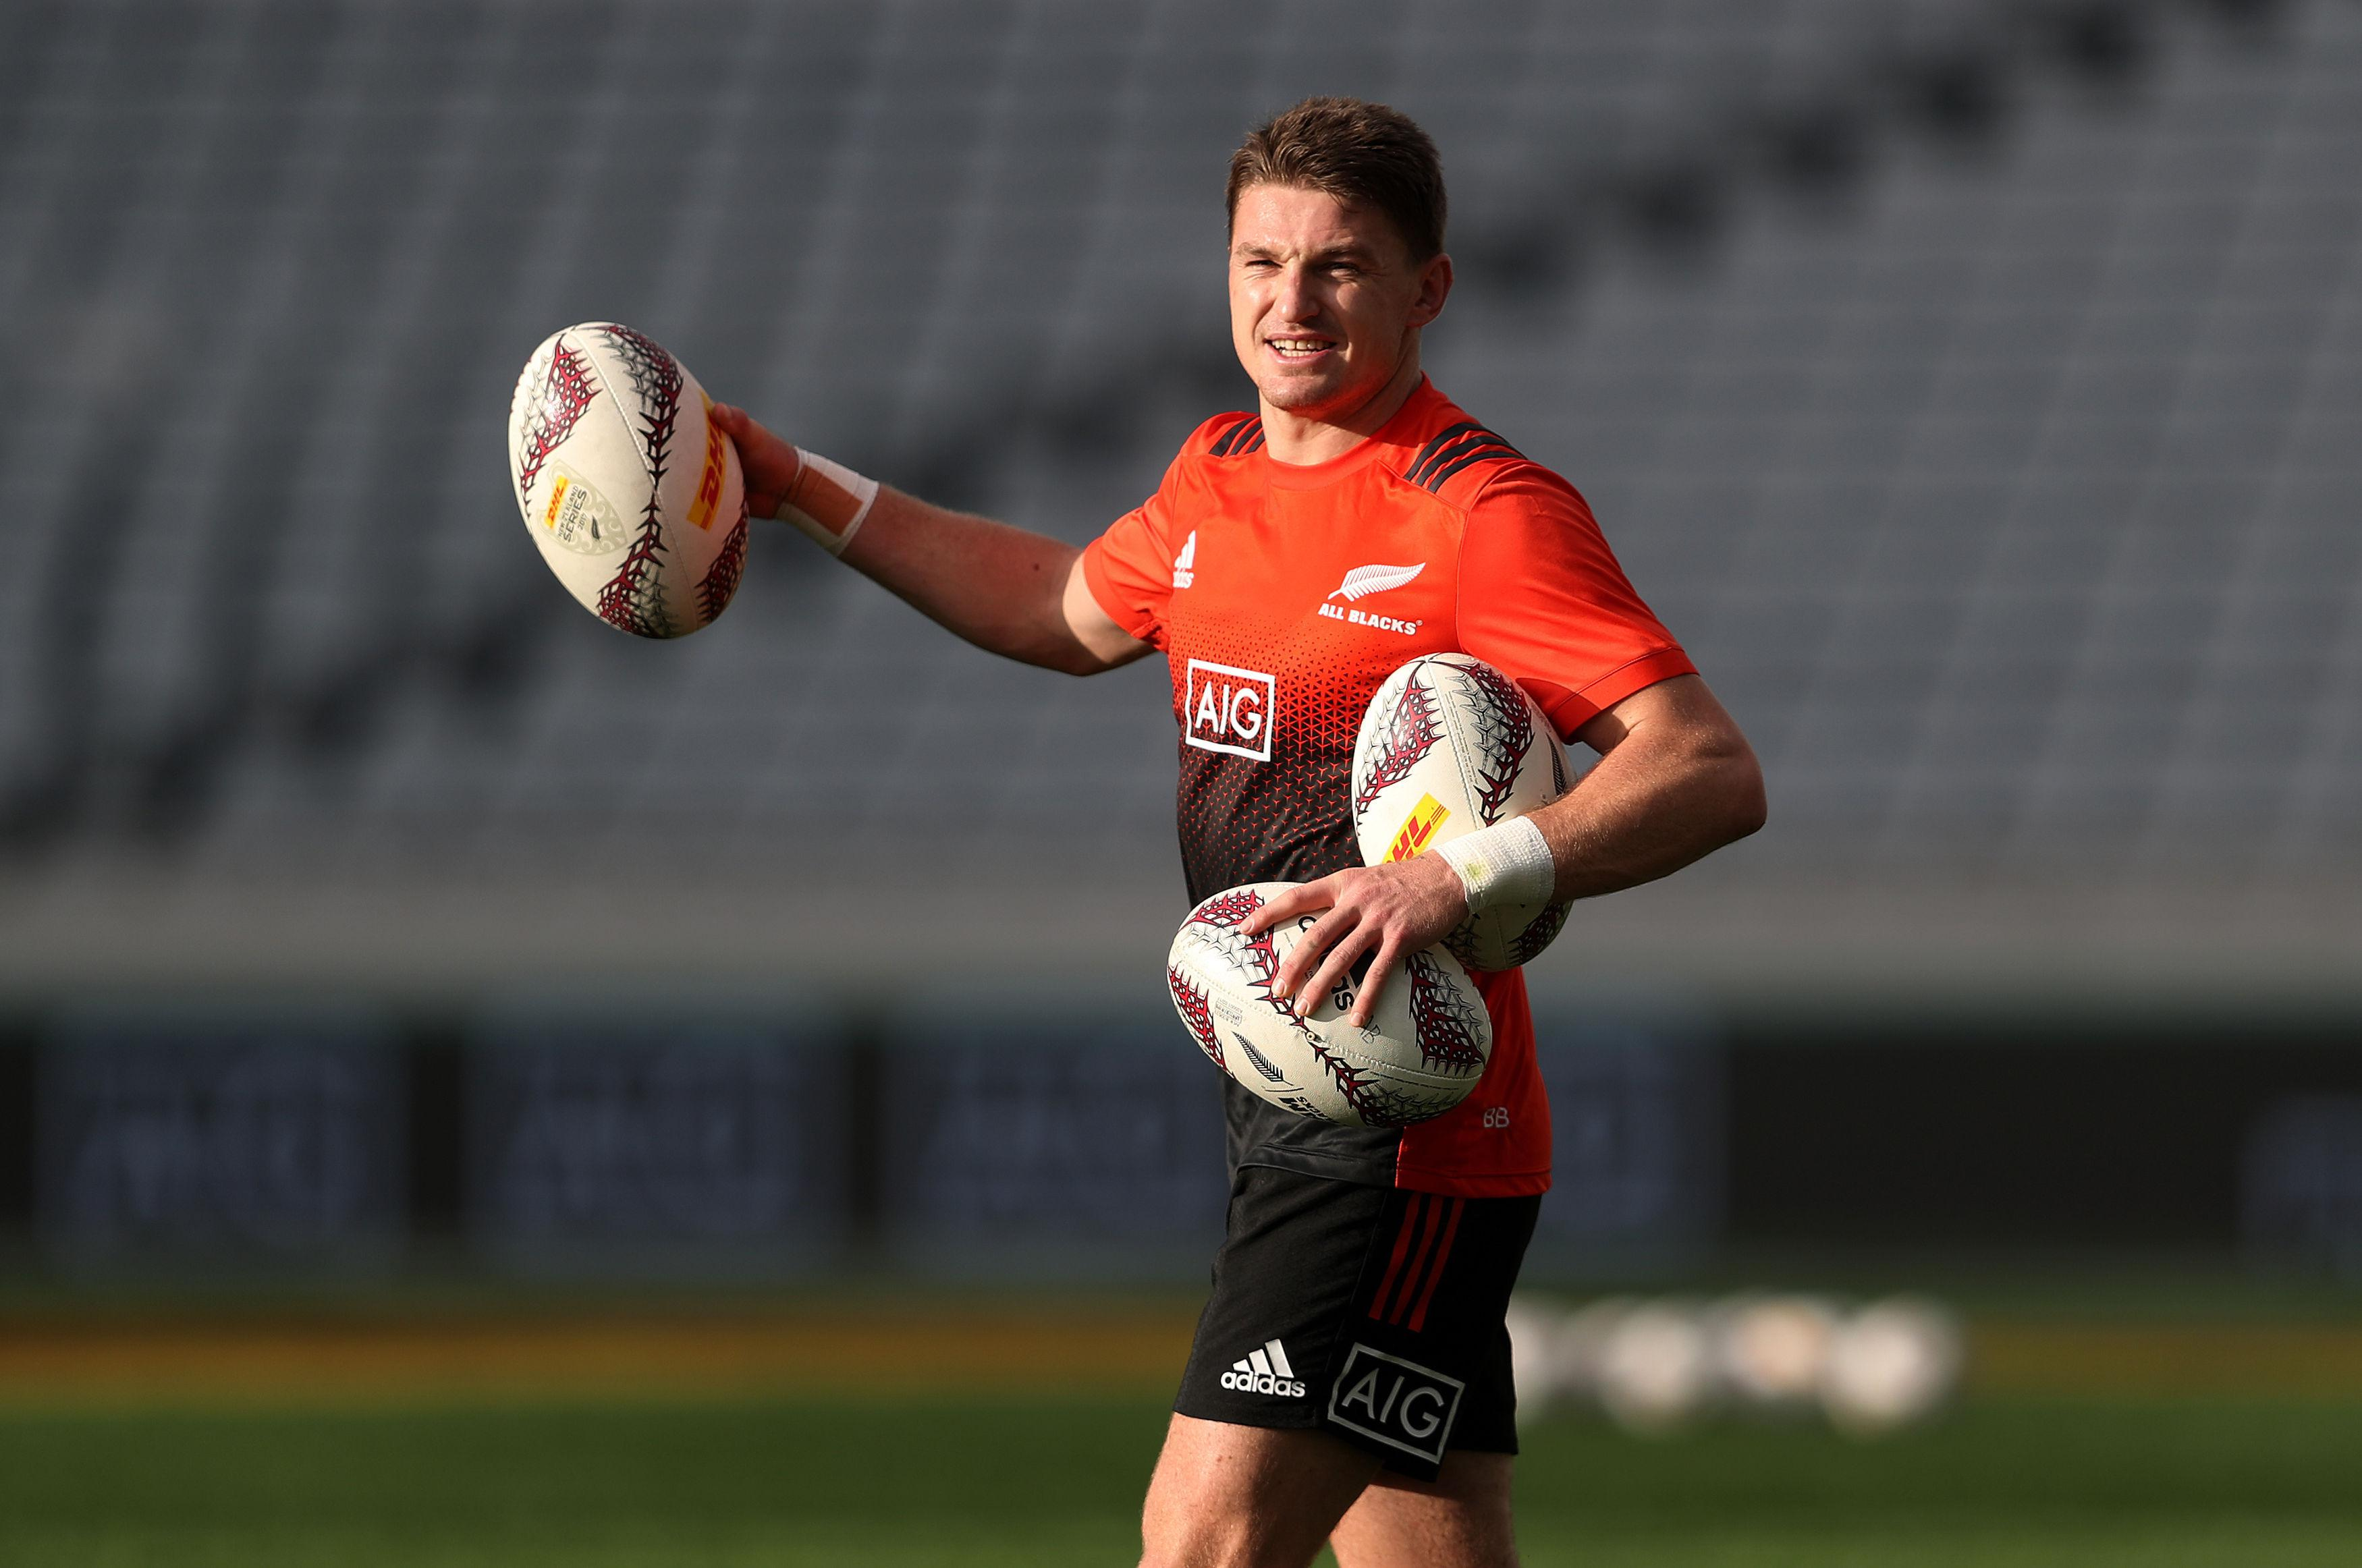 Beauden Barrett is the world's best fly-half and running riot again with the All Blacks